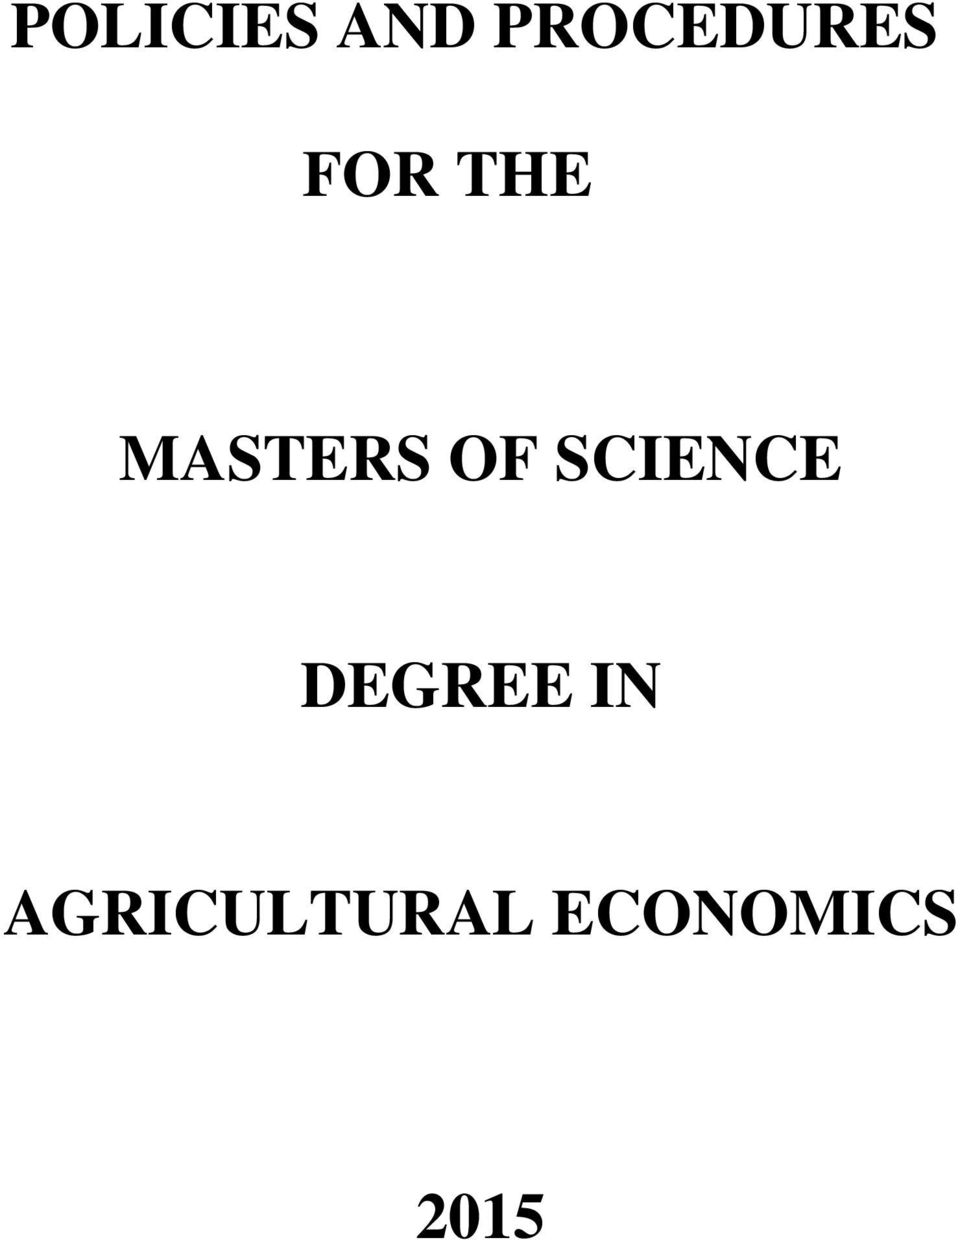 MASTERS OF SCIENCE